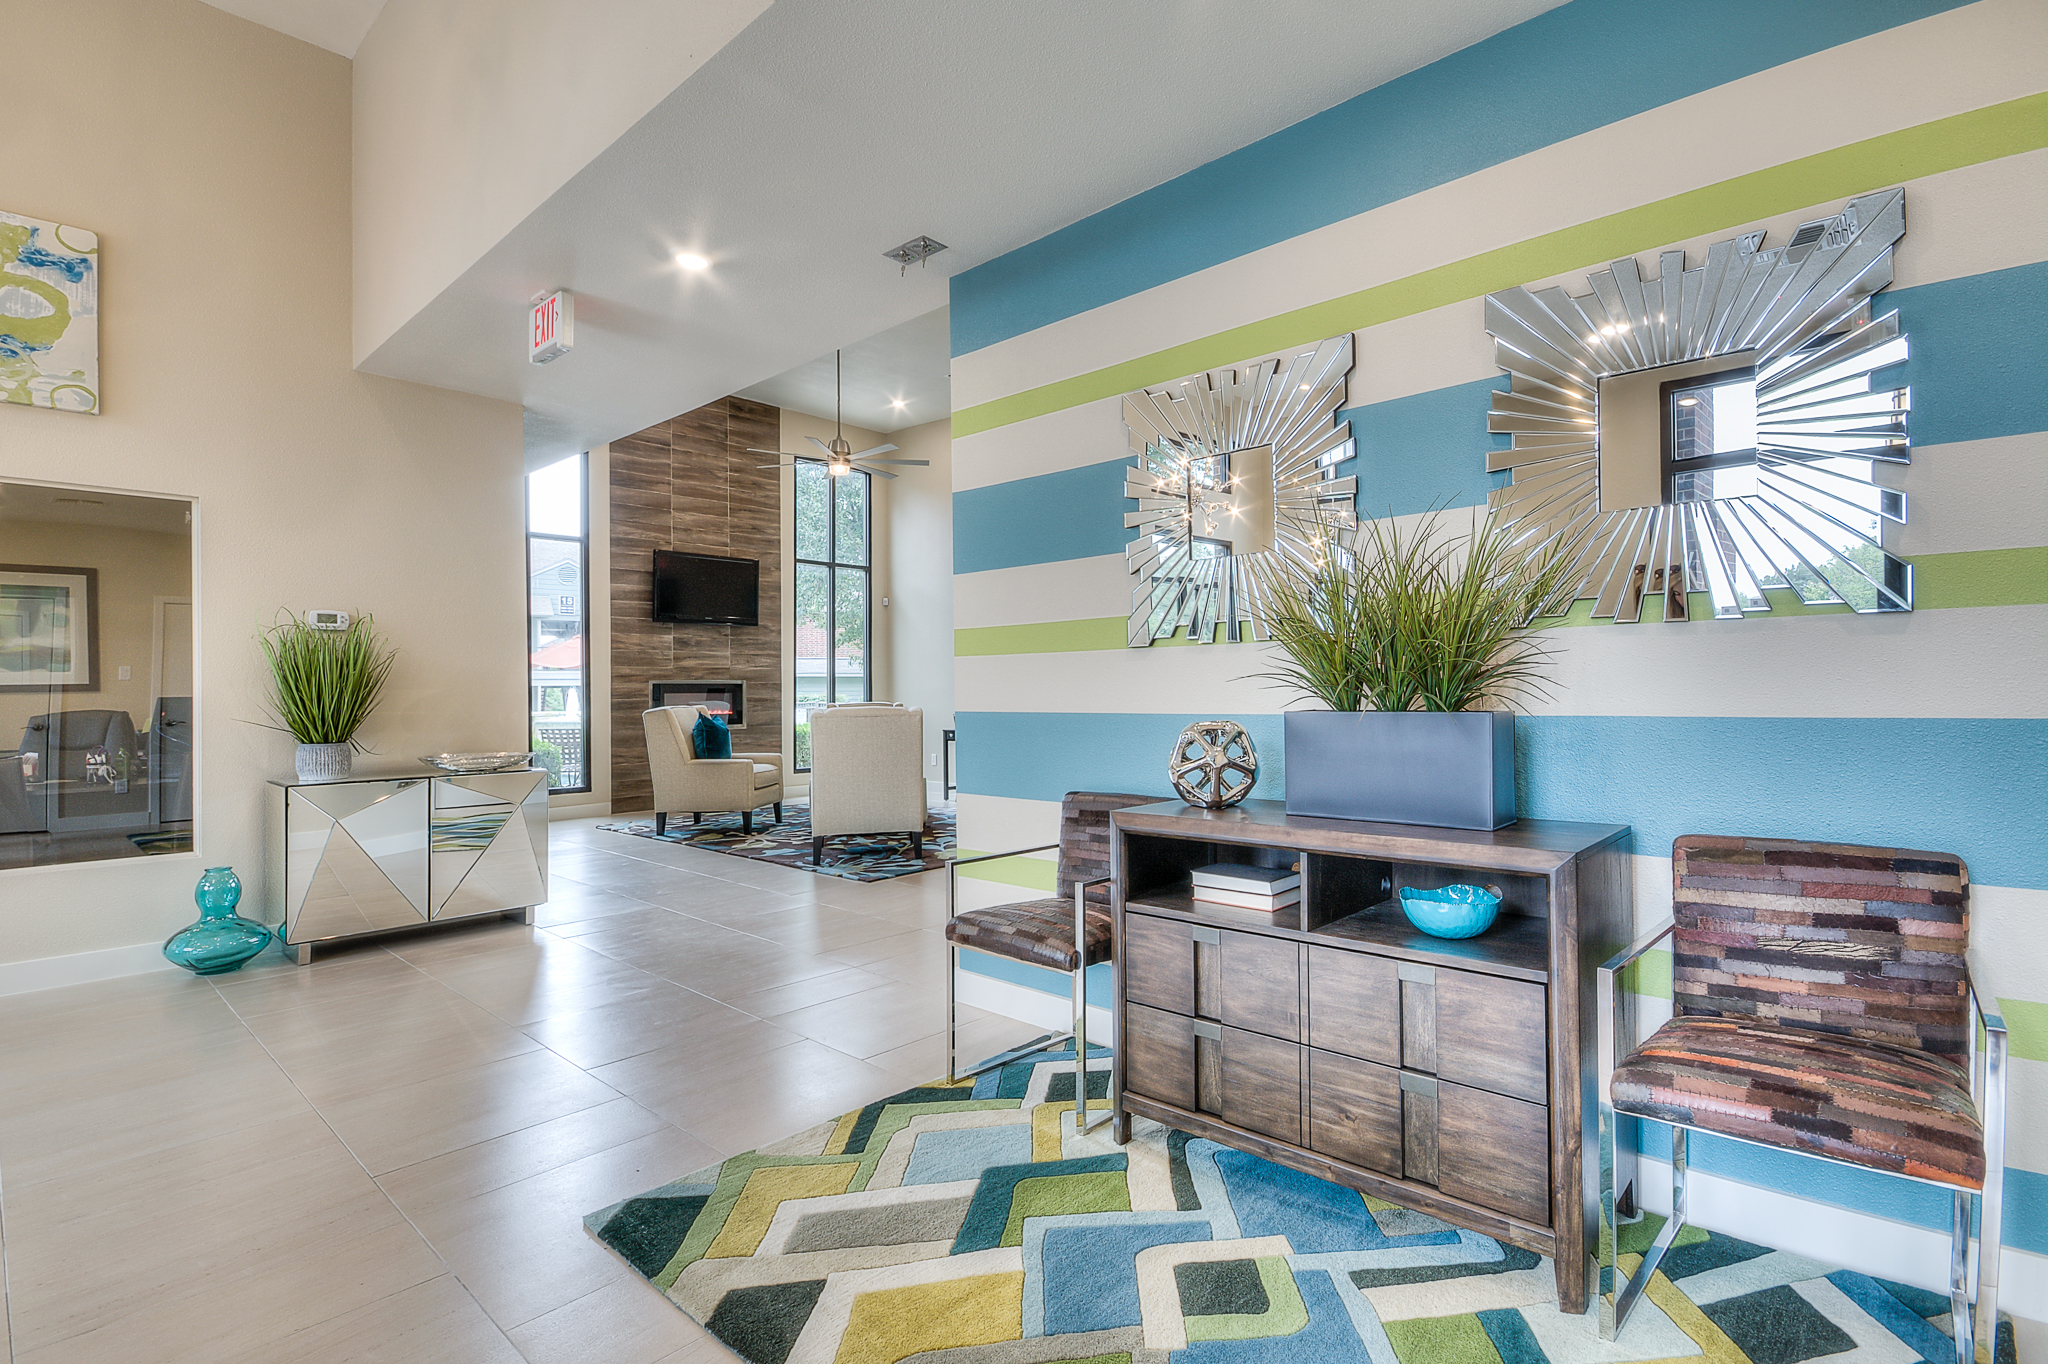 Interior design for Bradford Point multi-family apartment homes in Austin, TX